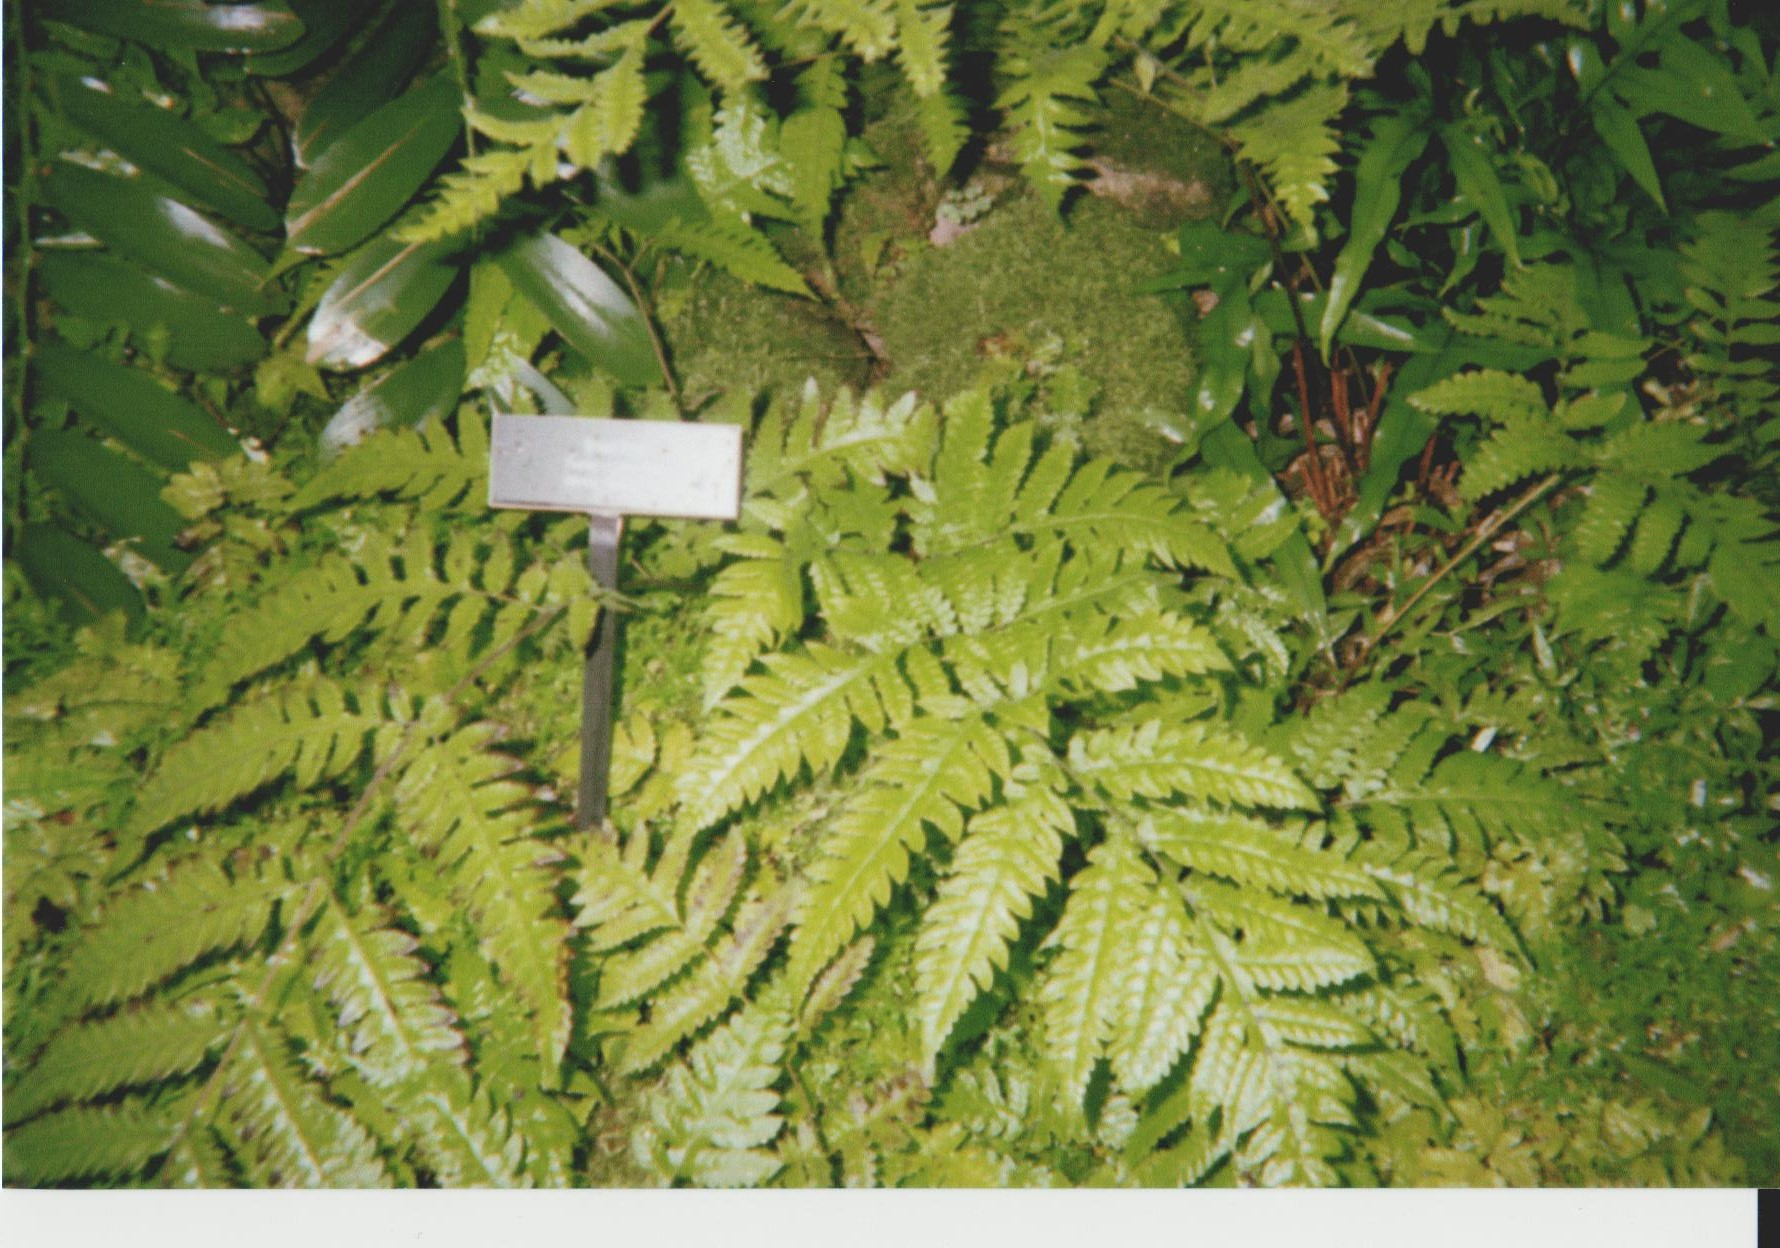 Ferns at Phipps